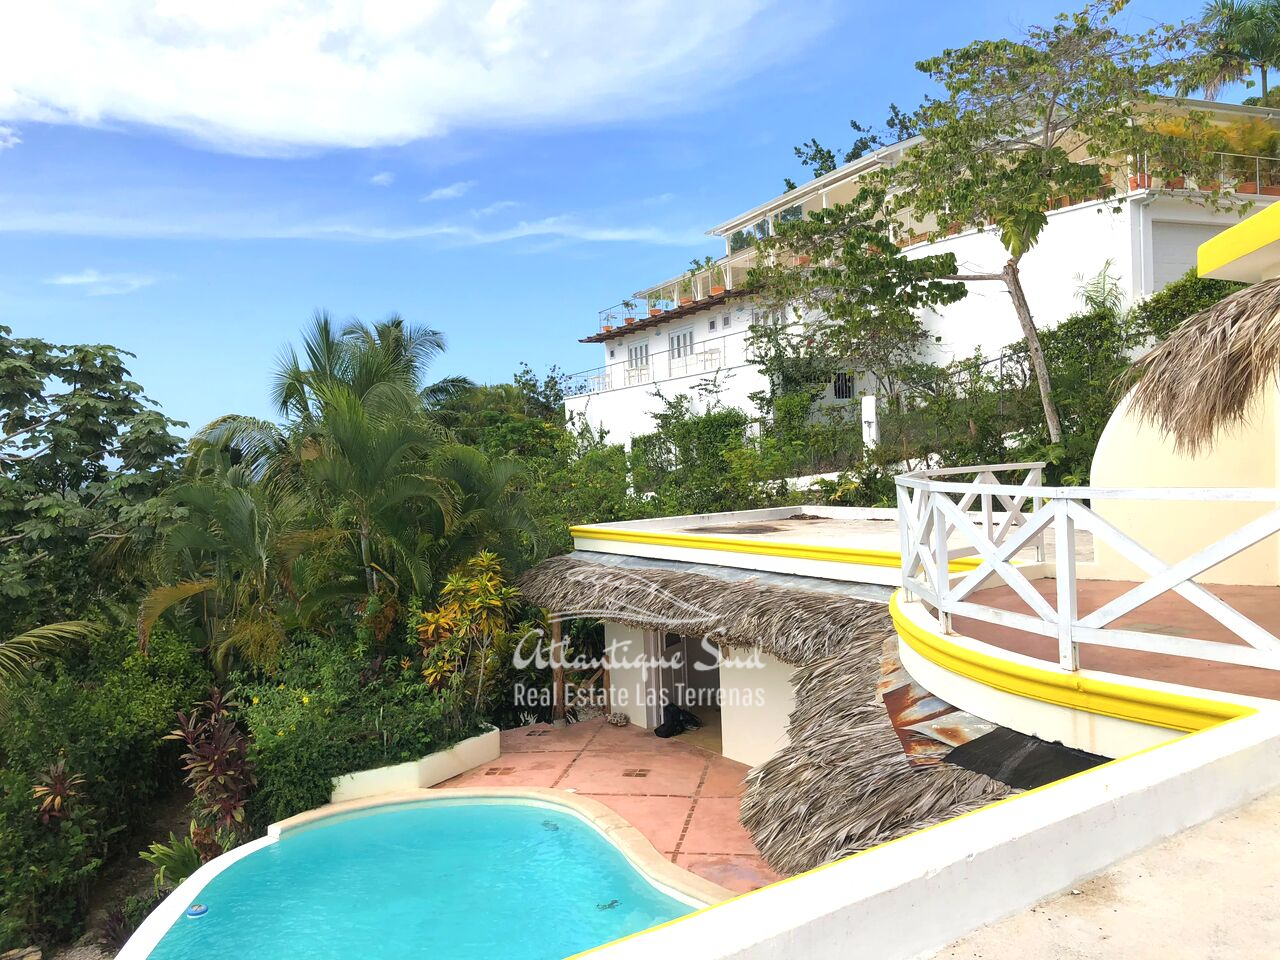 caribbean-style-villa-on-hill-for-sale25.png